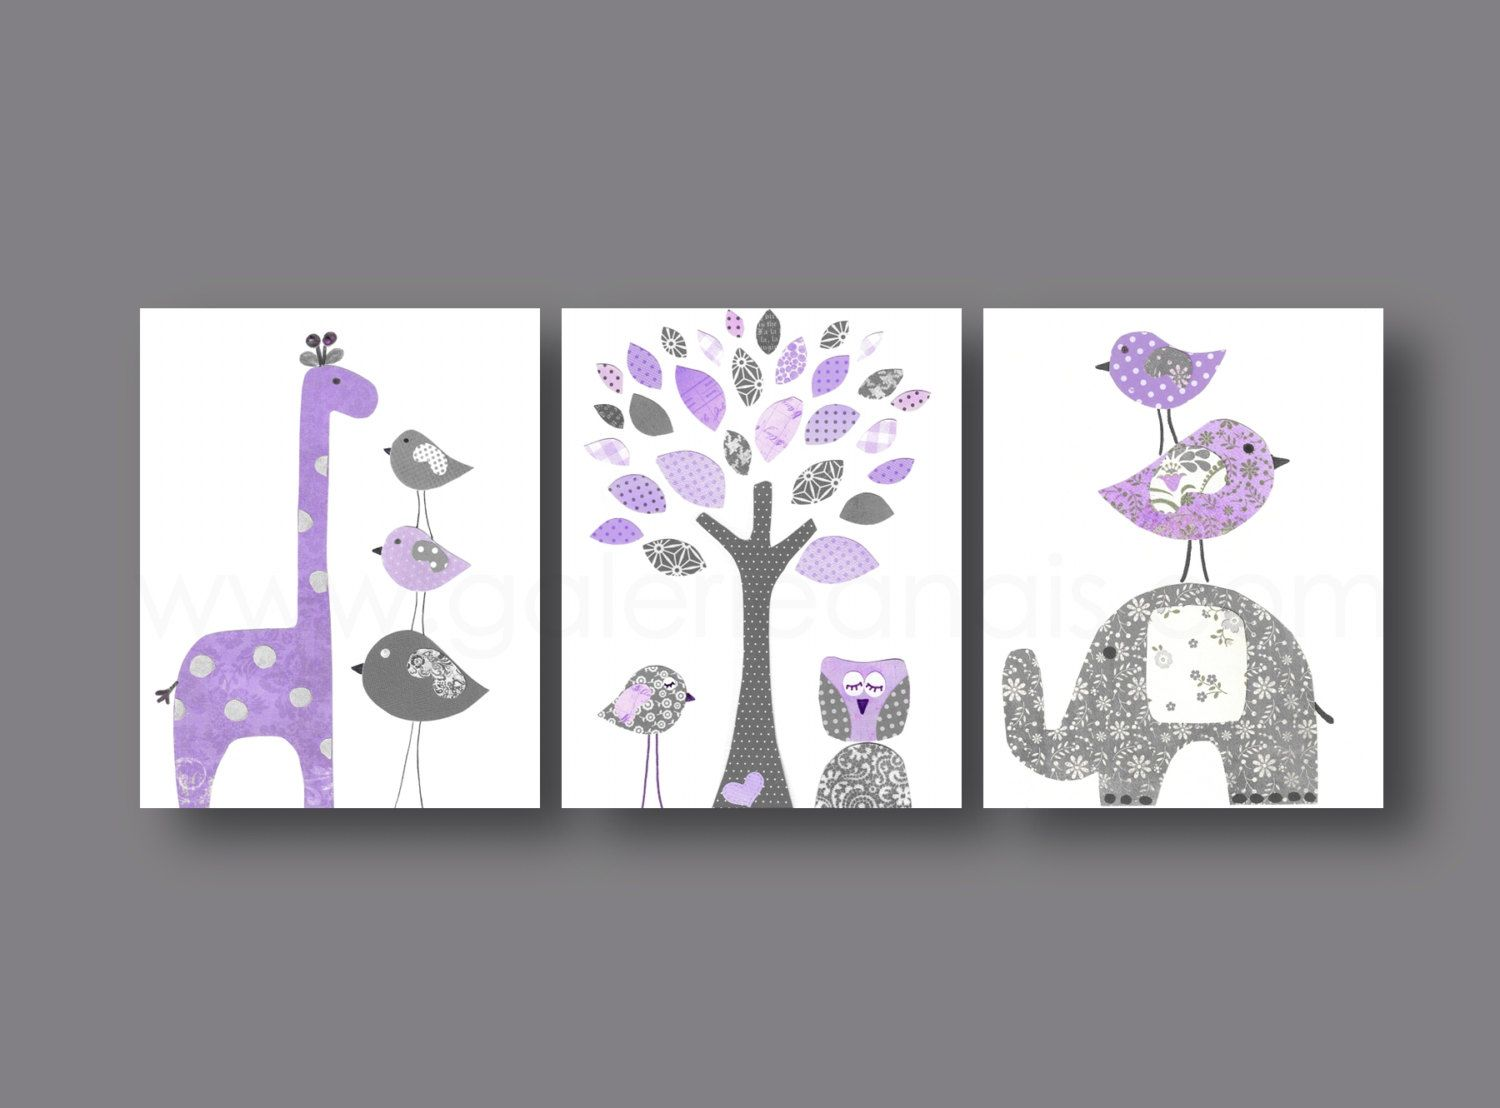 Elephant nursery wall art print mom baby dad by rizzleandrugee - Baby Nursery Art Nursery Wall Art Nursery Print Kids Art Giraffe Elephant Tree Birds Owl Purple Gray Set Of Three Prints